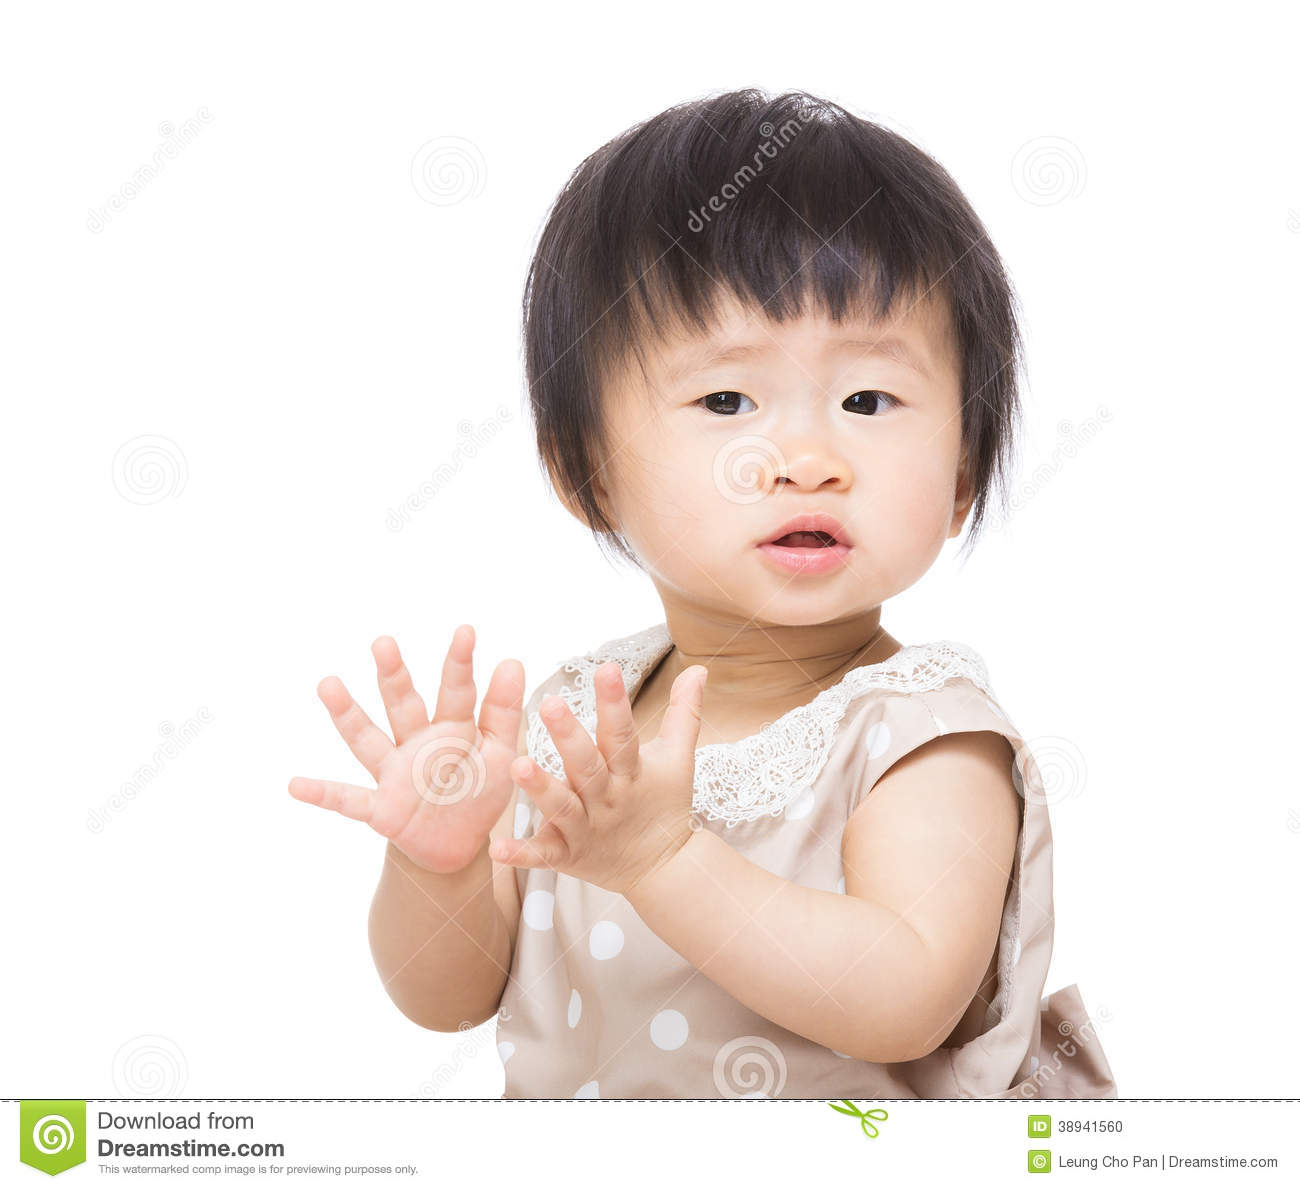 Baby Girl Clapping Hands Stock Photo - Image: 38941560